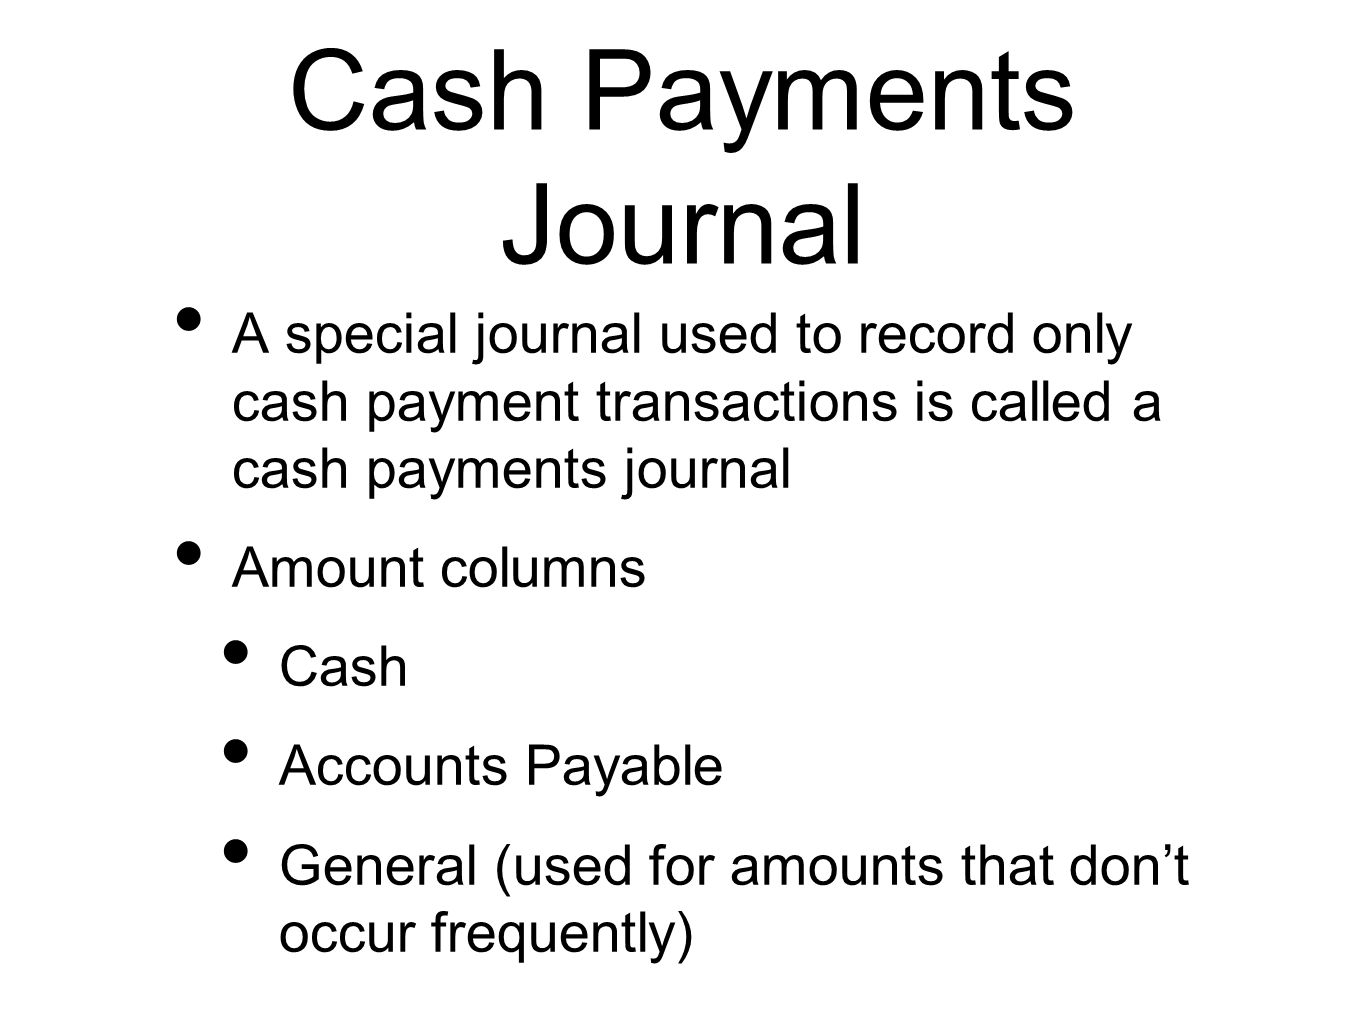 Cash Payments Journal A special journal used to record only cash payment transactions is called a cash payments journal.